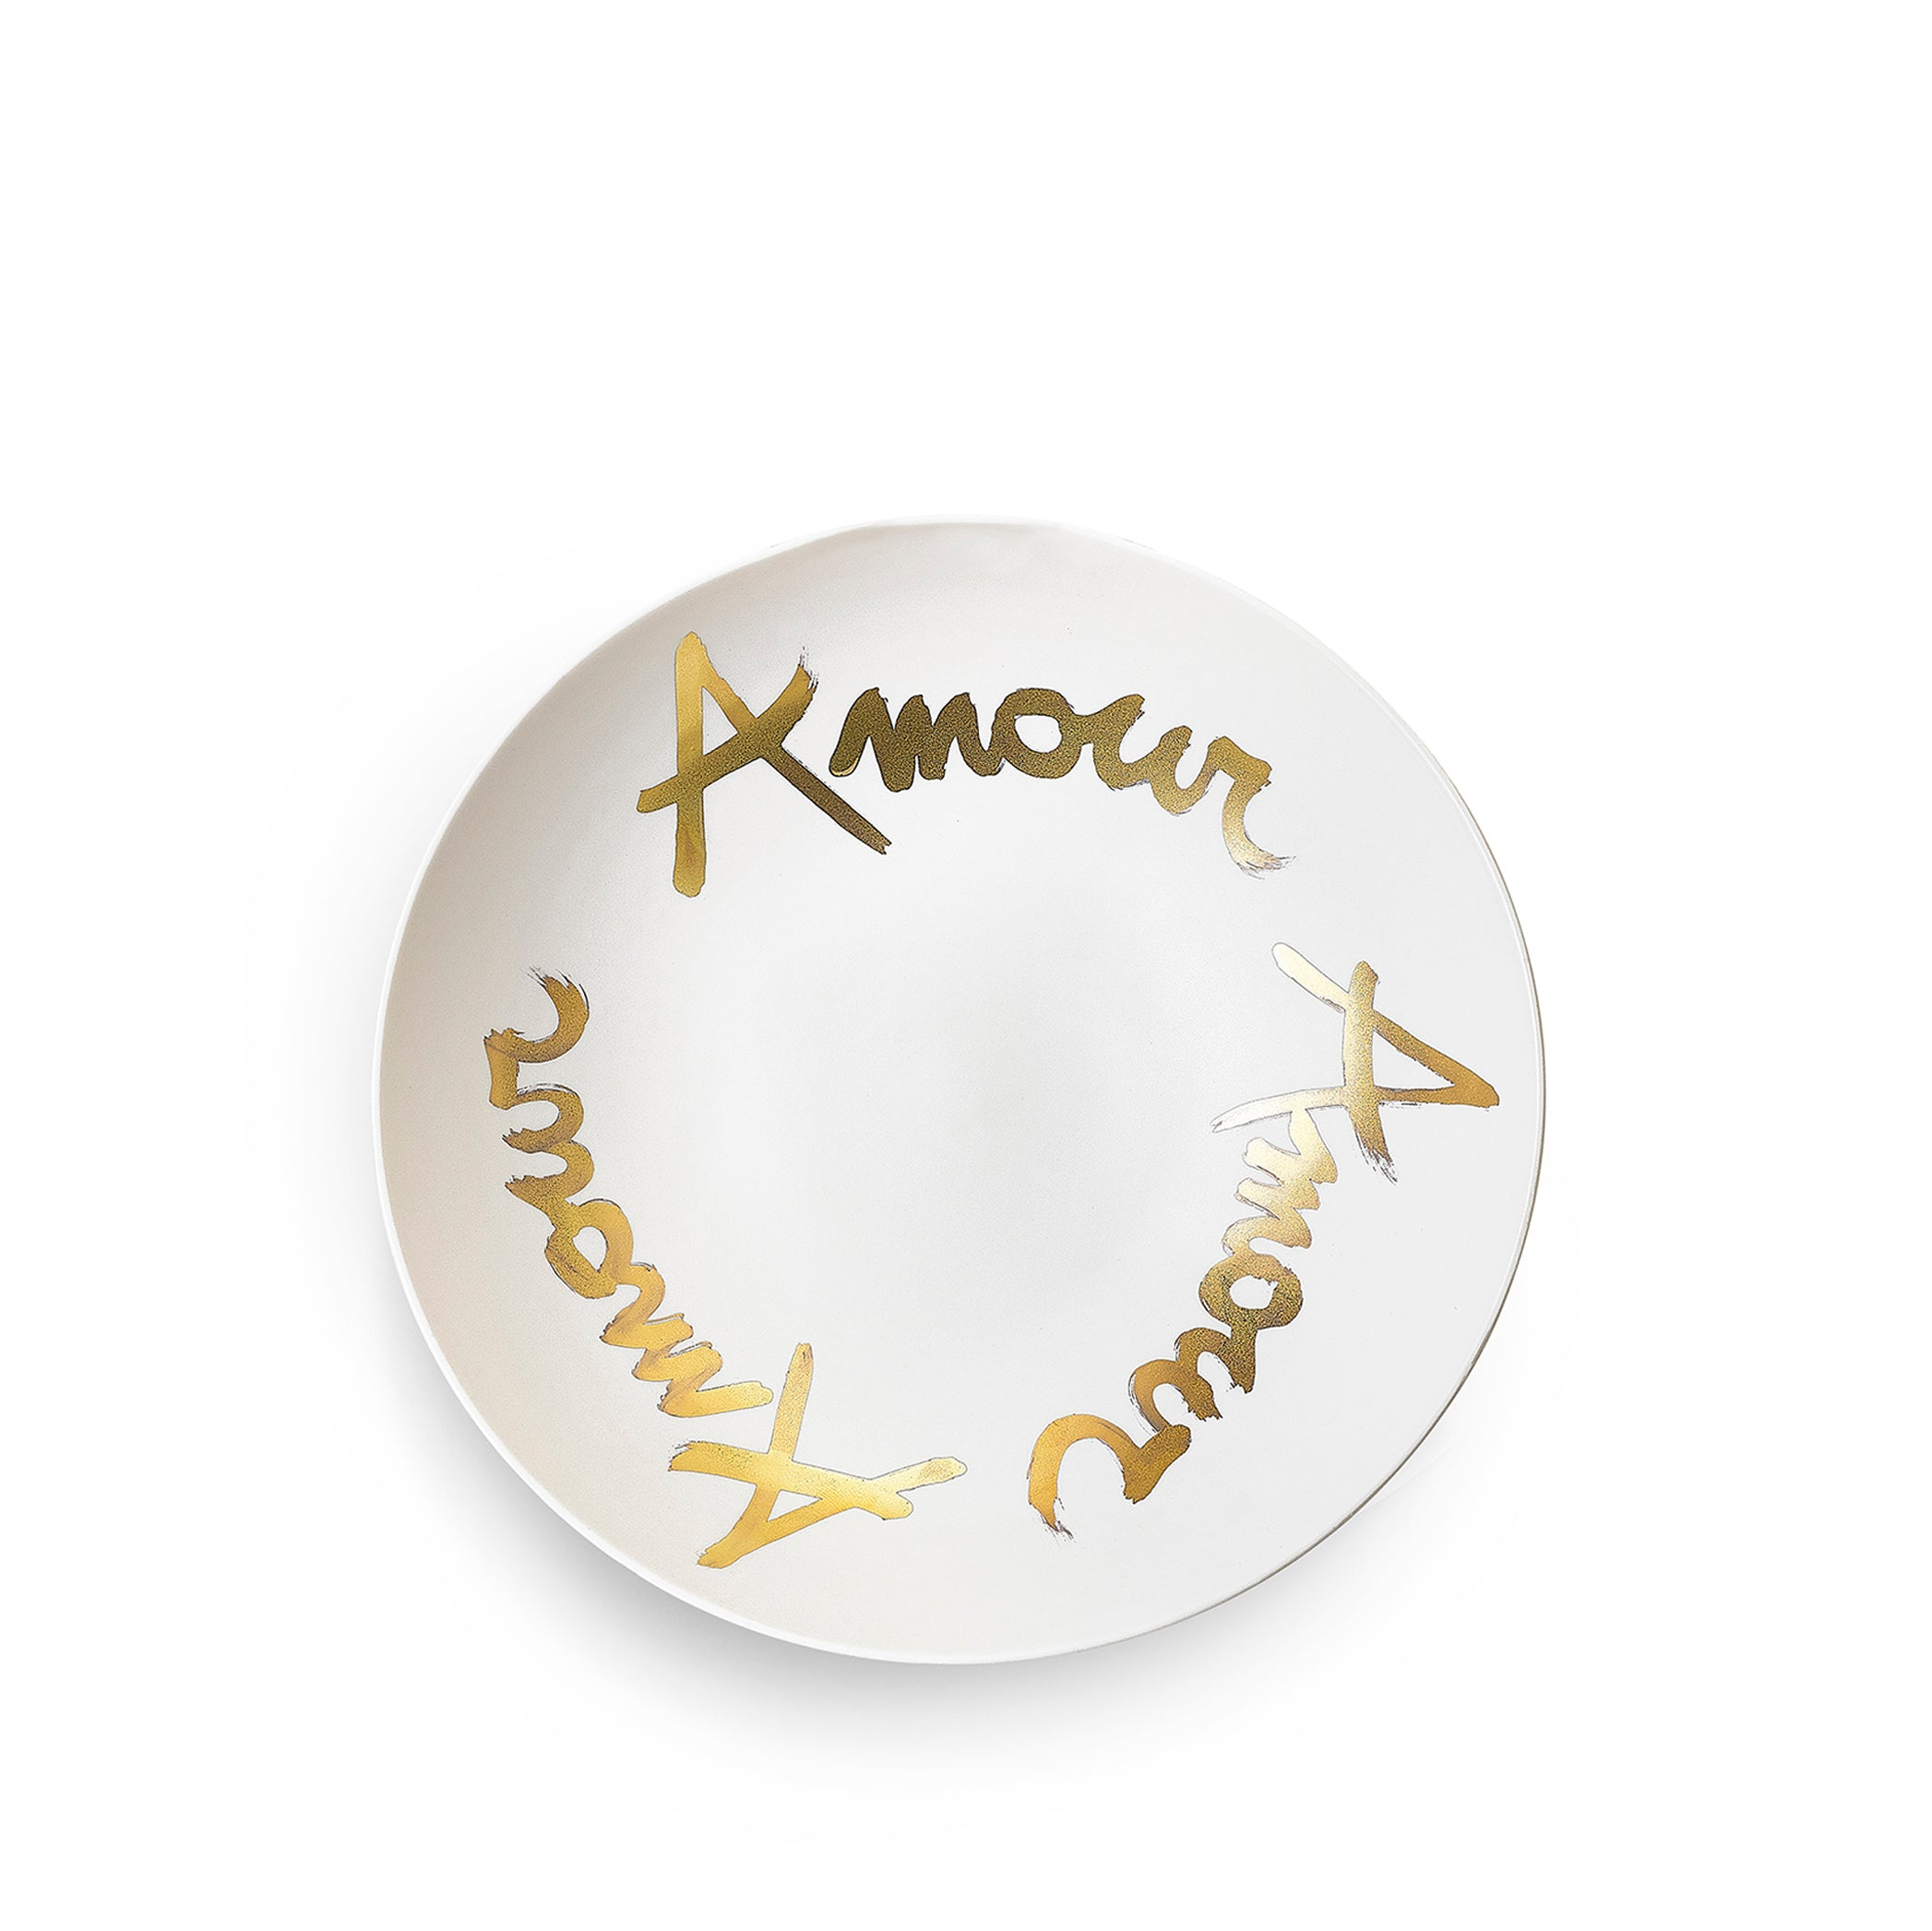 Amour Amour Amour Porcelain Bowl in Matte Gold